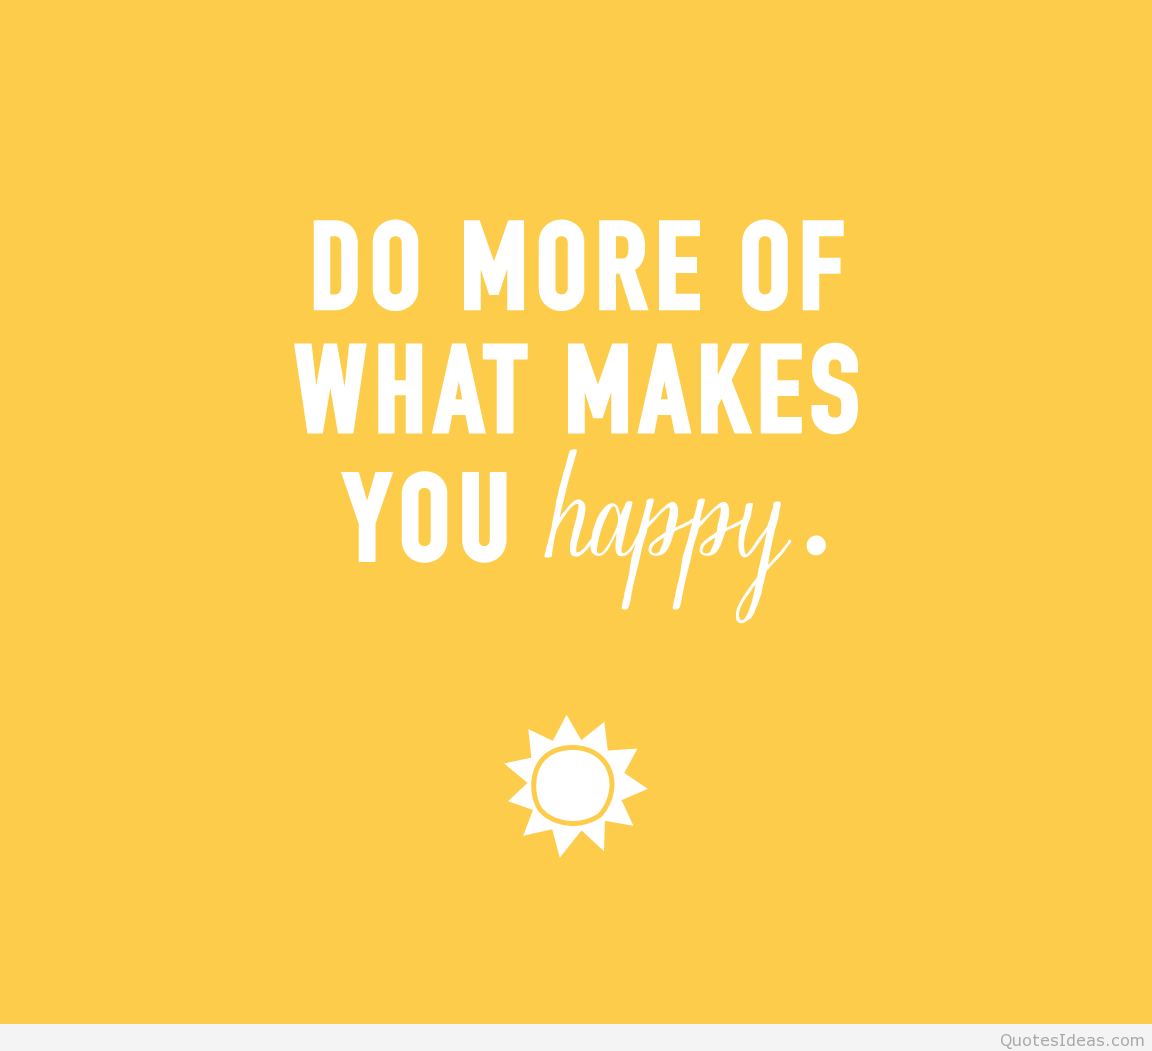 What Makes You Happy Quotes Domorewhatmakesyouhappy Pictures Photos And Images For